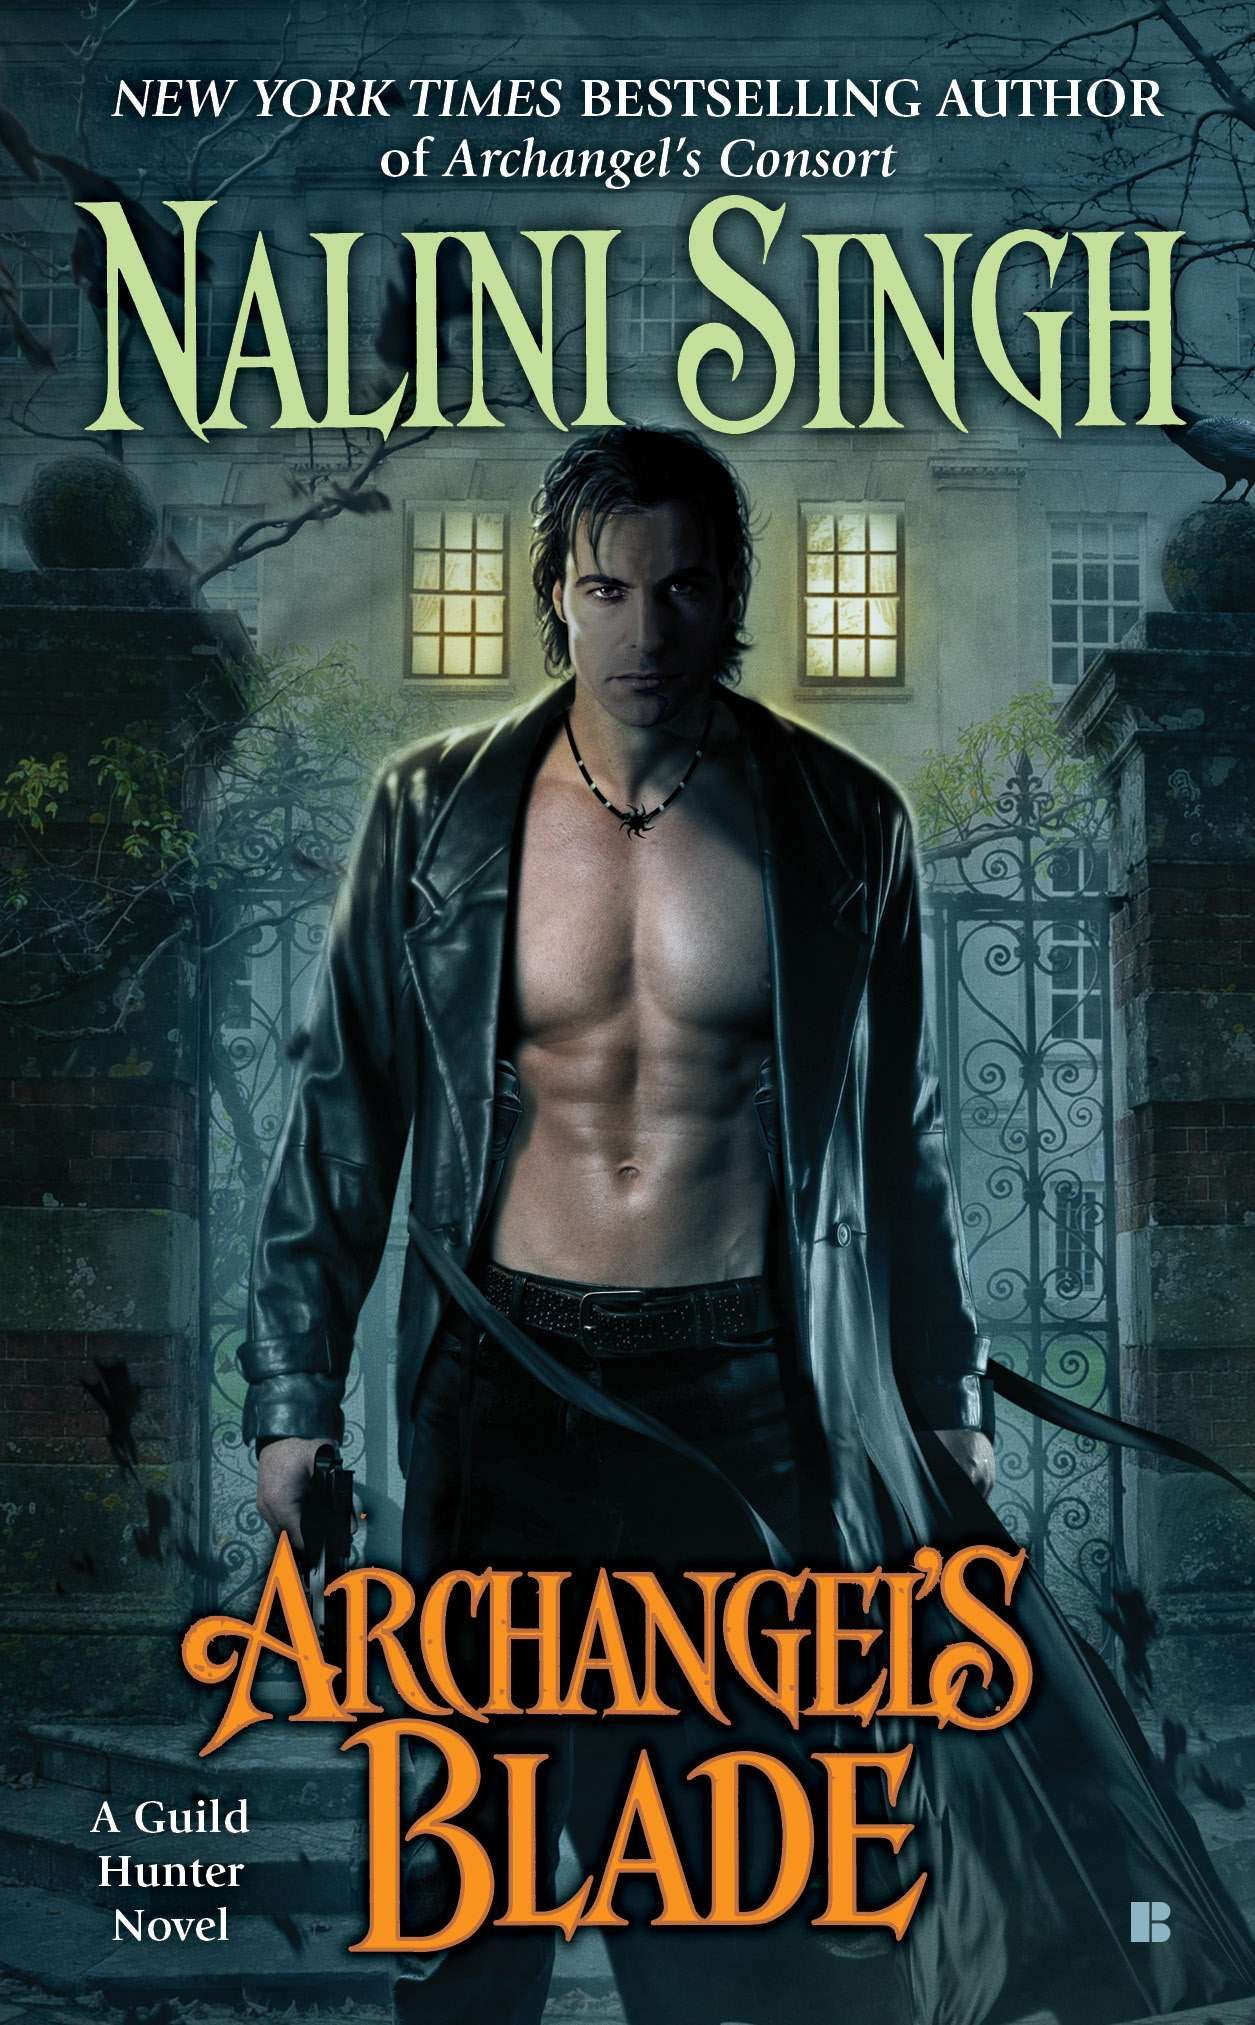 Archangel's blade cover image